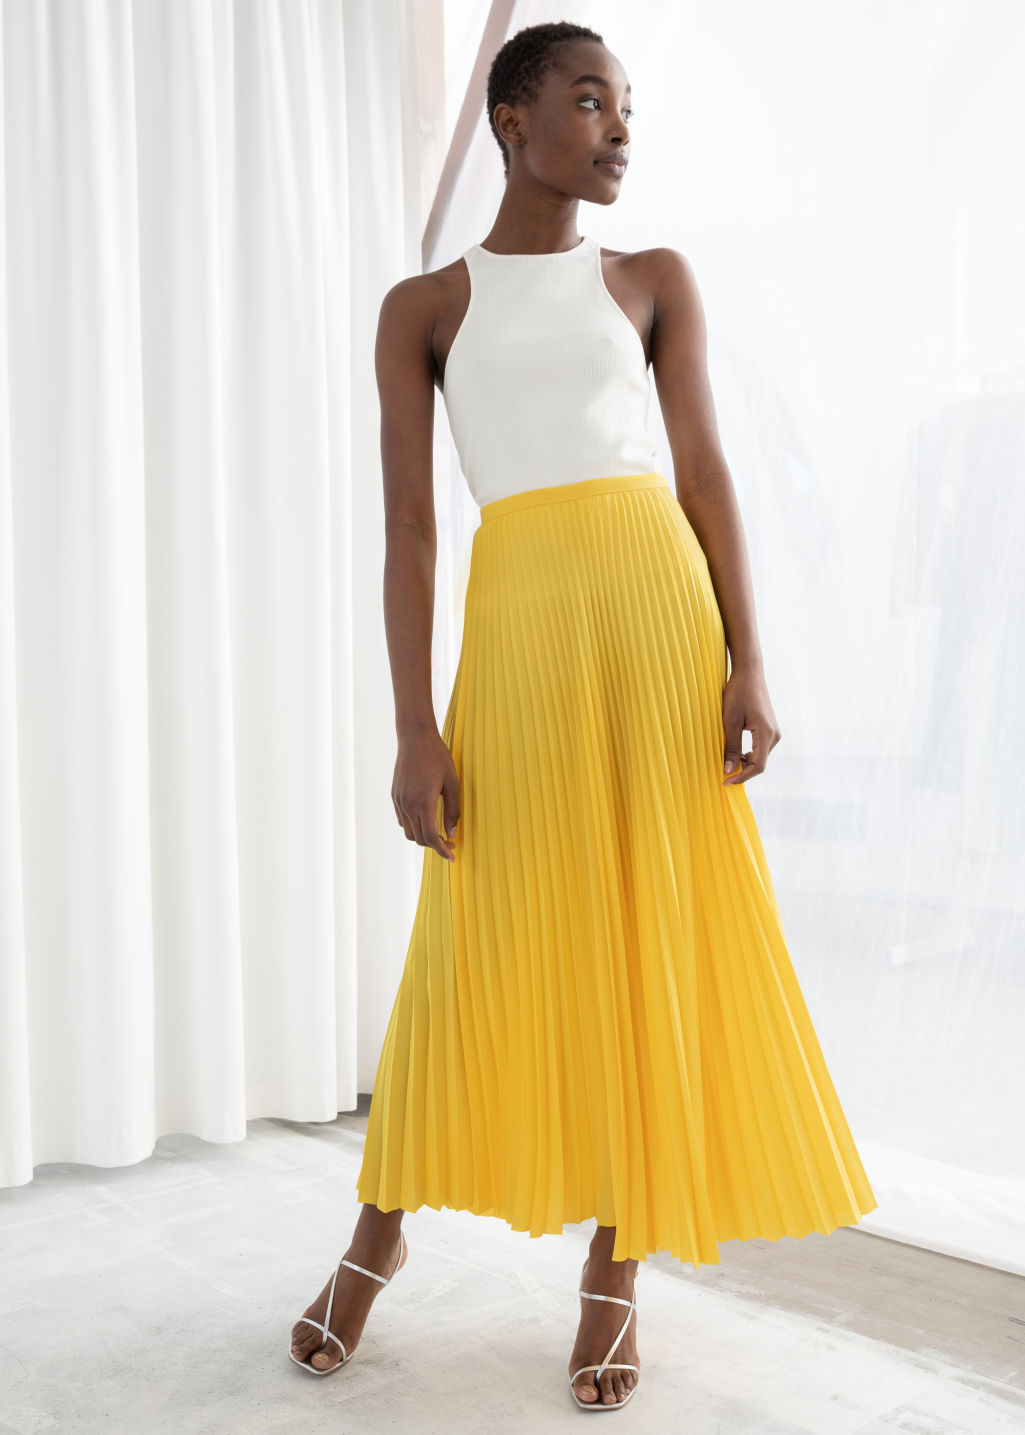 & Other Stories Pleated Midi Skirt - $89.00I have a dress from & Other Stories in this same sunshiney yellow that I love, so of course I was drawn to this golden pleated skirt of theirs. For a while I wasn't too keen on wearing yellow because of my skin tone, but I've been learning to like it since last summer – so long as there's not too much of a green undertone to the yellow.